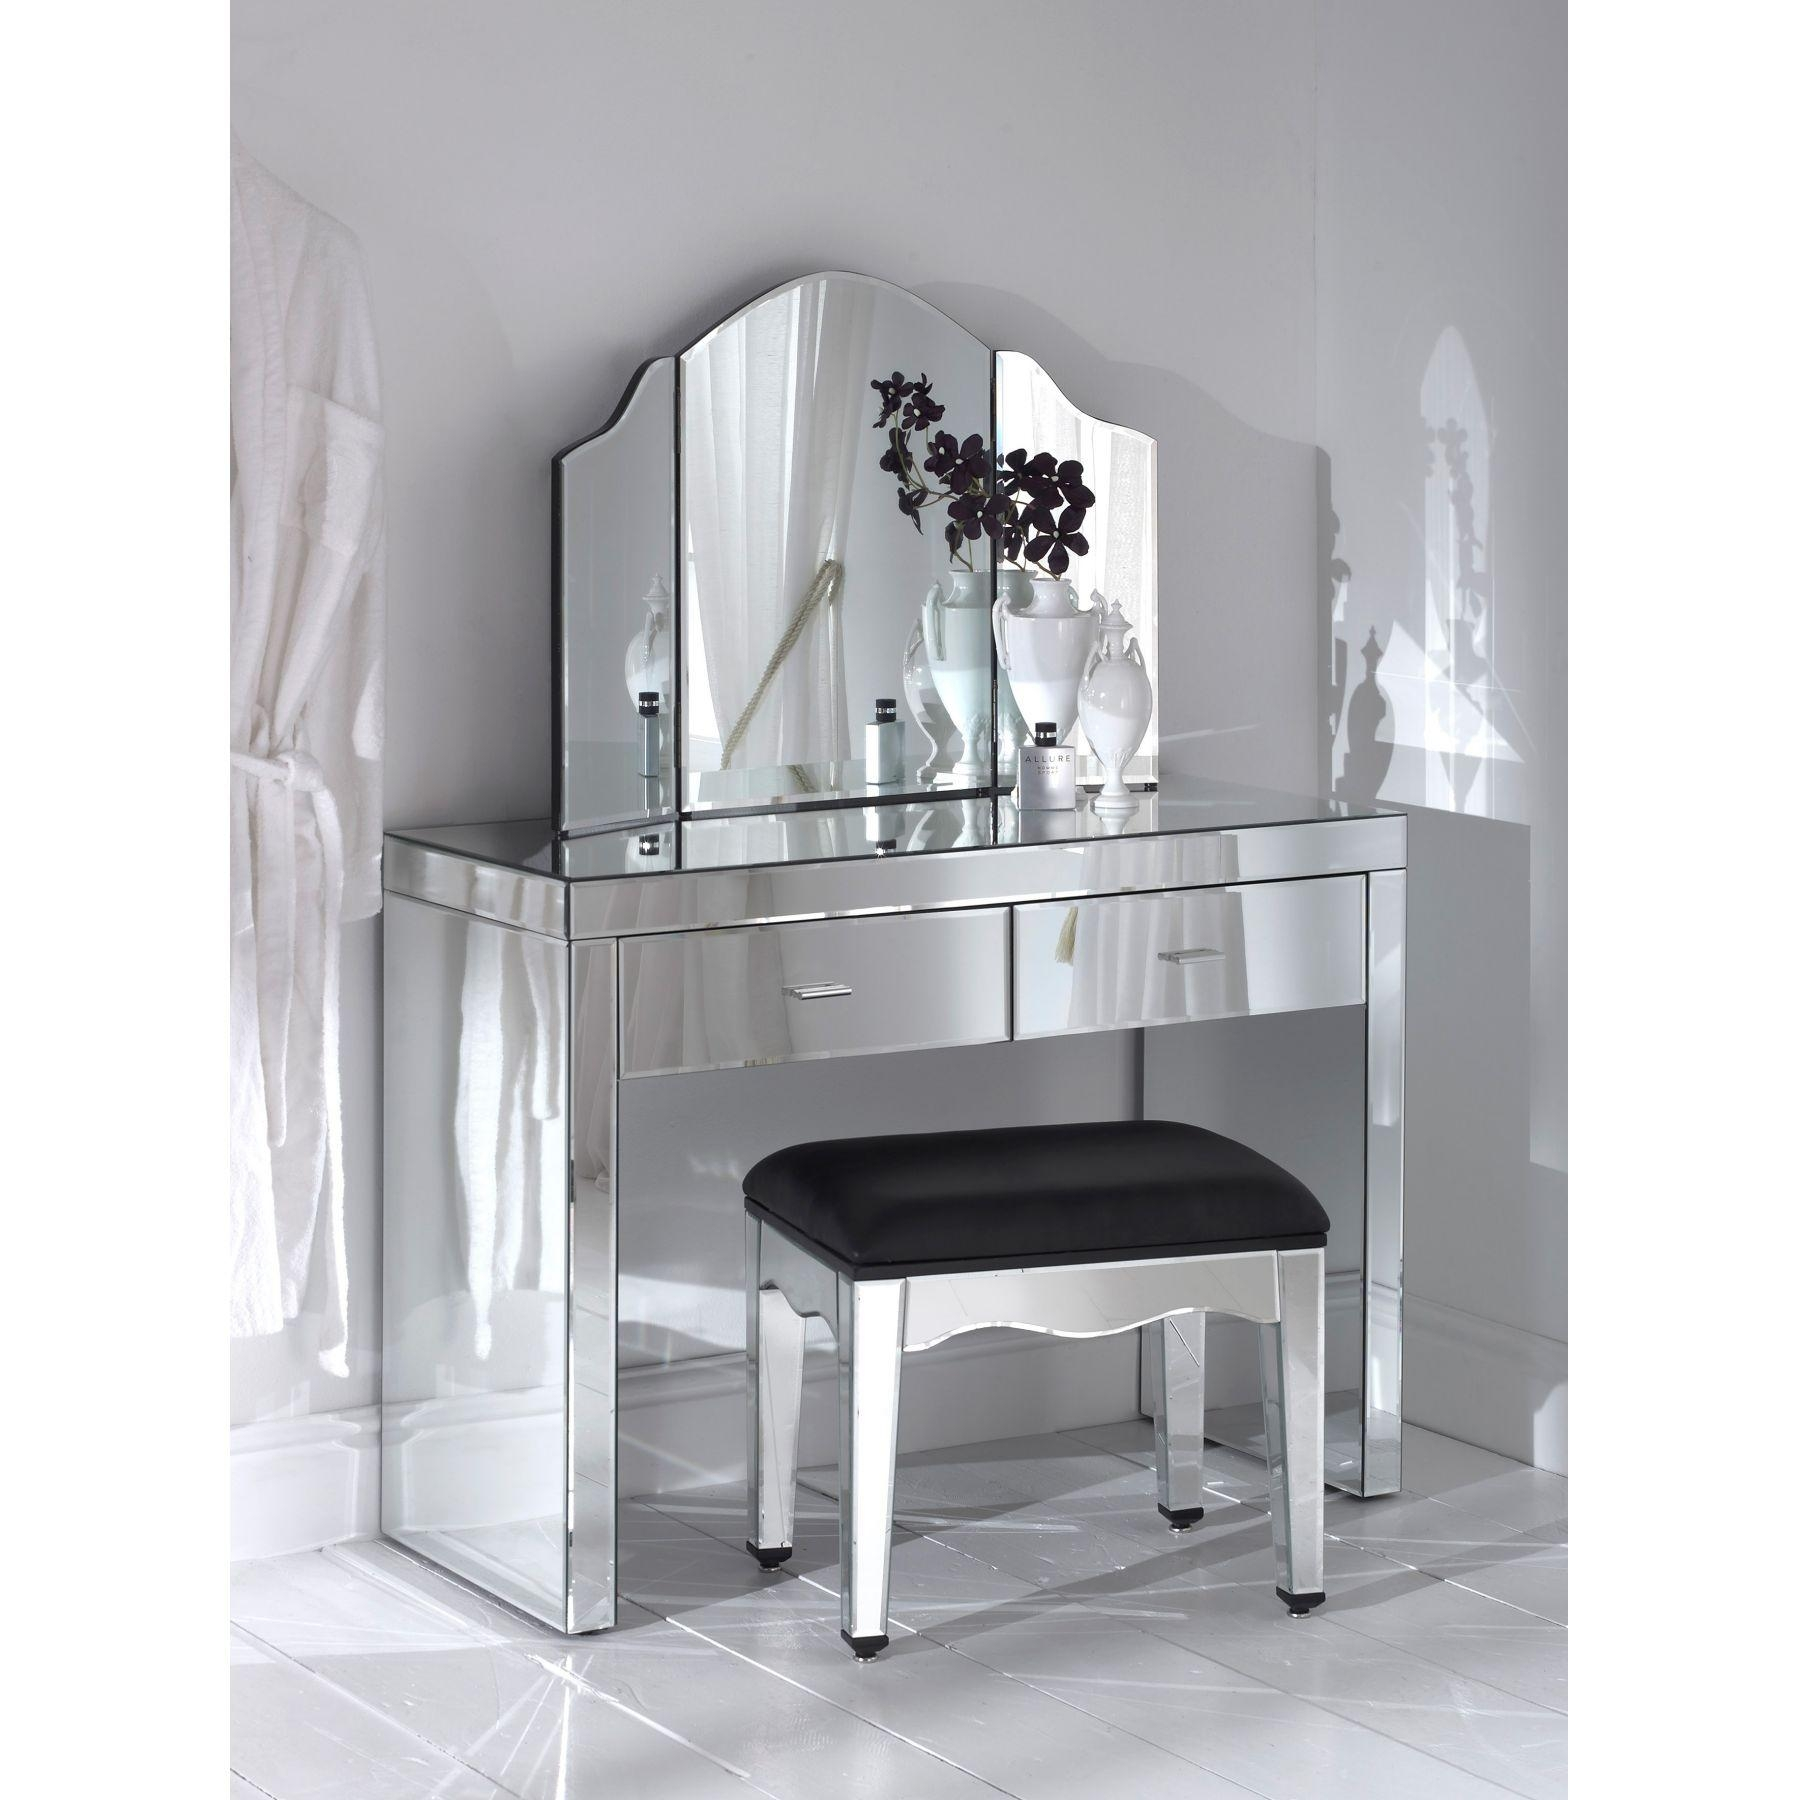 Bedroom Furniture : Narrow Dressing Table Black Dressing Table Regarding Black Dressing Mirror (Image 3 of 20)